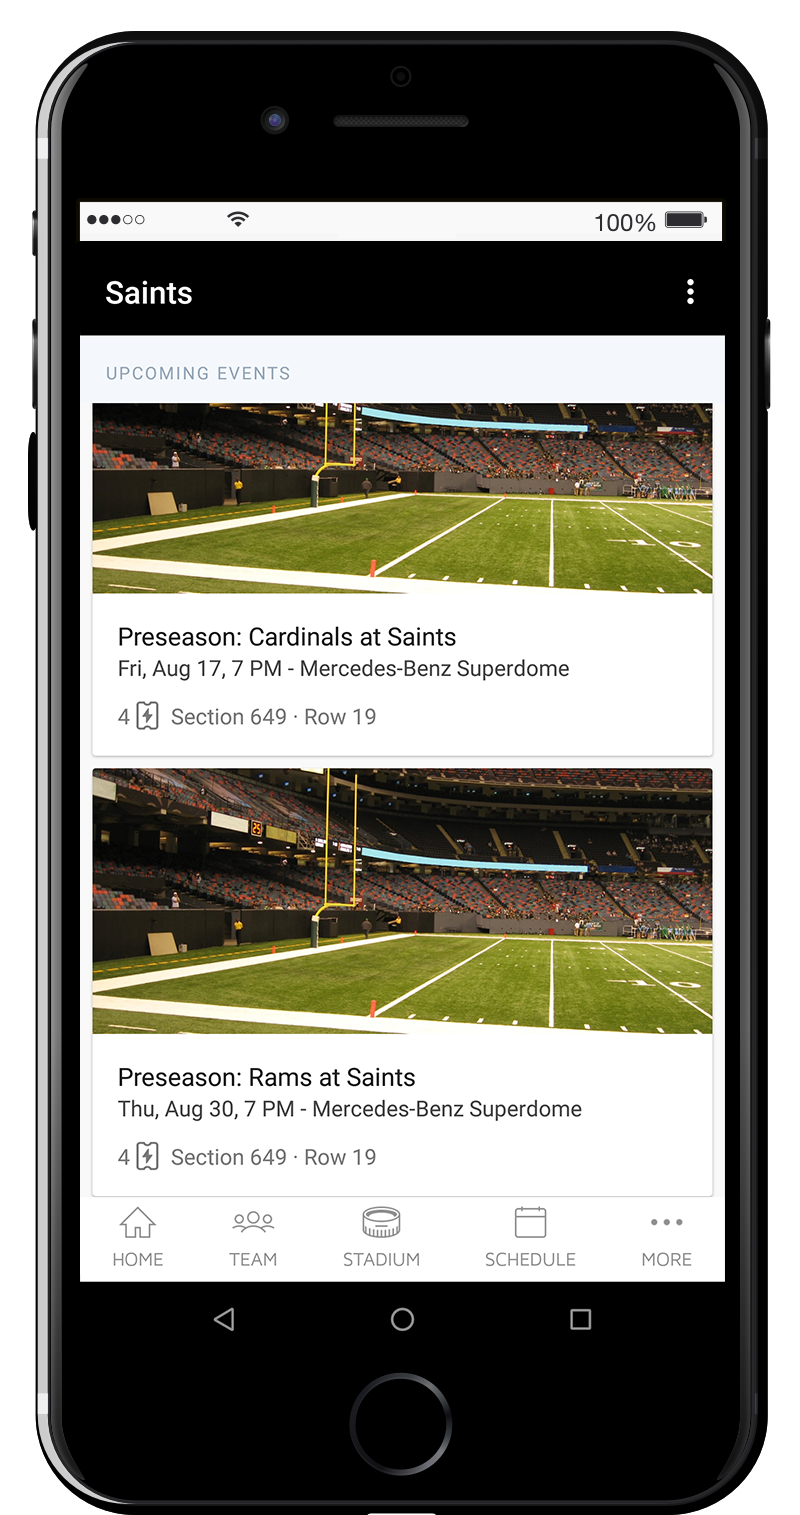 Once logged in, you will see a list of your available tickets for each Saints game.